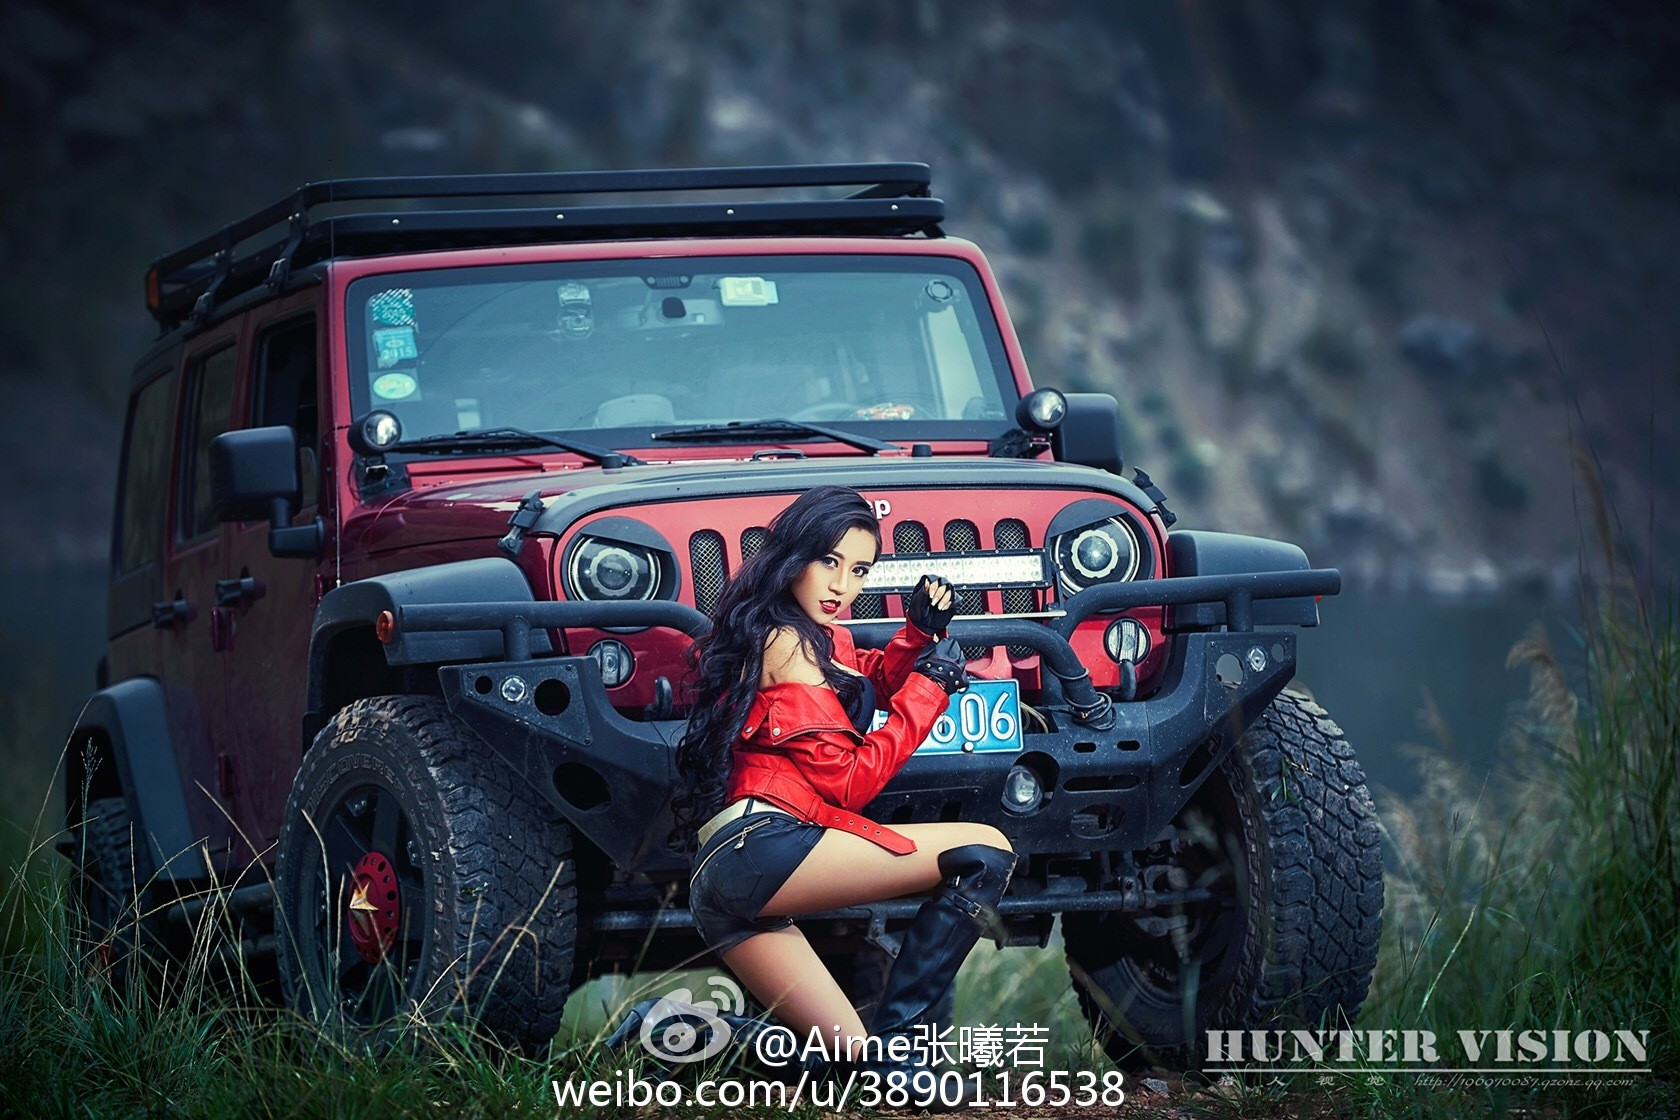 jeep wrangler sexy chinese star communist weird jk models different comments nightmare